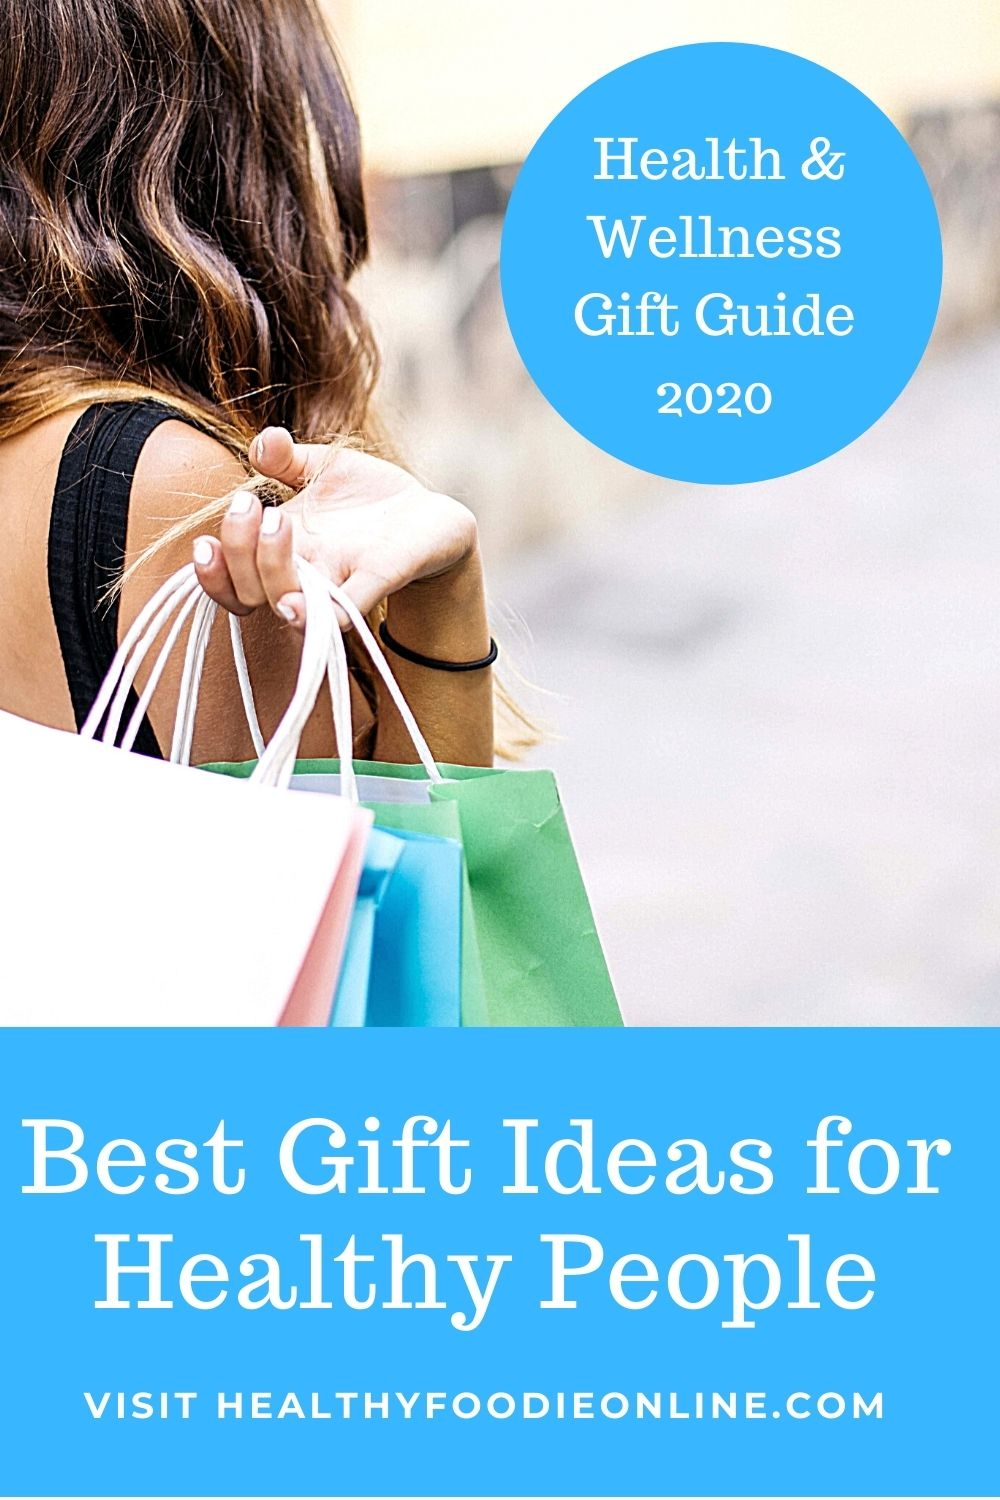 Best gift ideas for healthy people